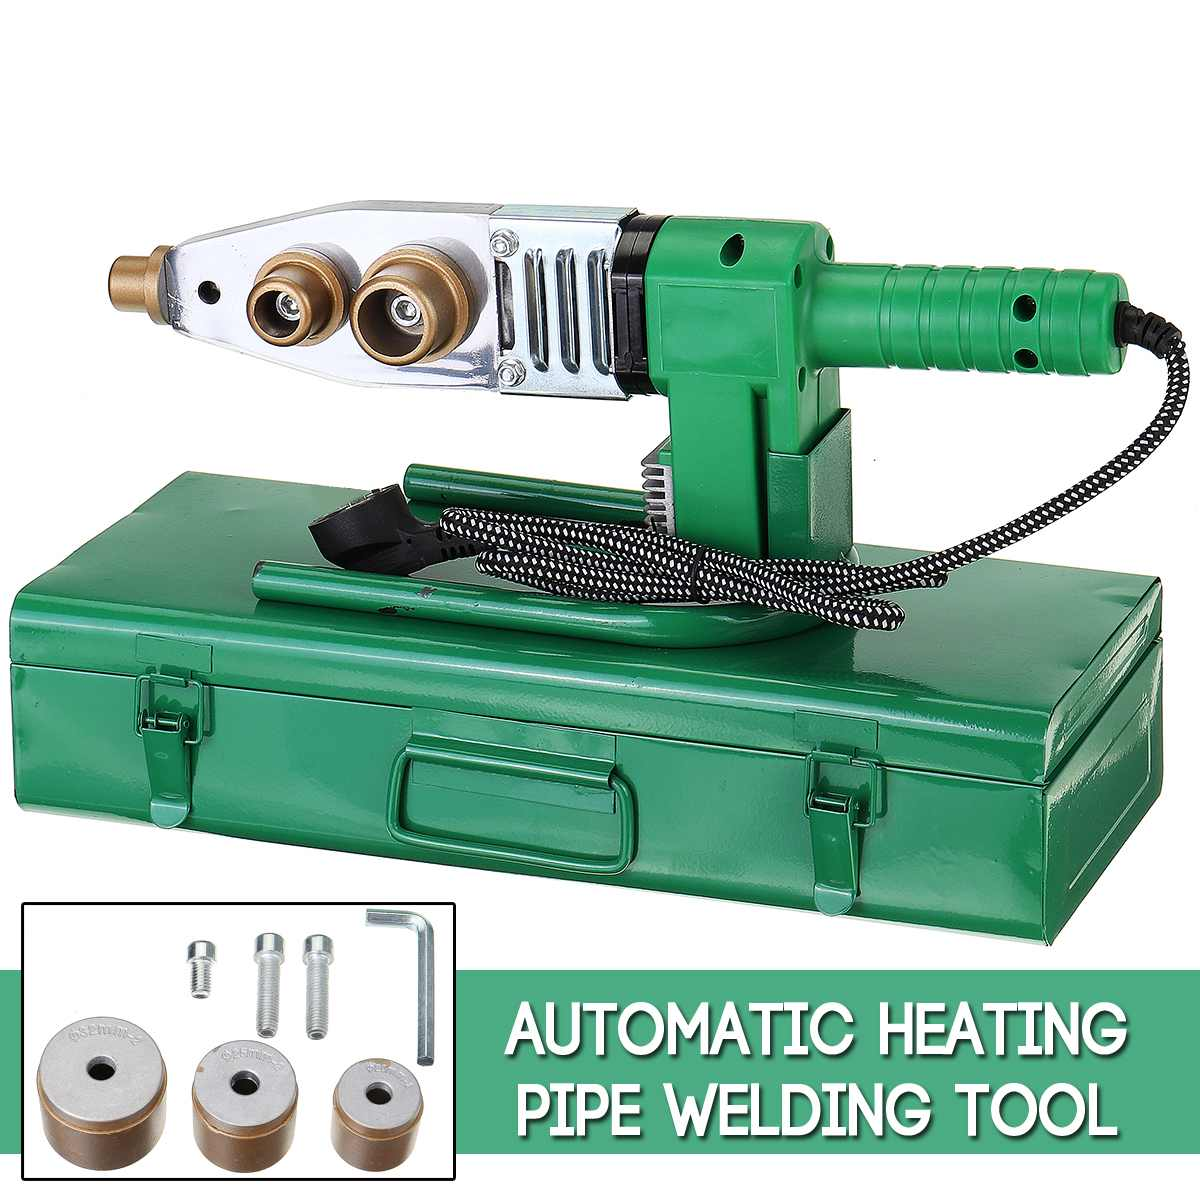 Electric Pipe Welding Machine Heating Tool Heads Set For PPR PB PE Plastic Tube PPR Welder Hot Melt Machine Temperature Control